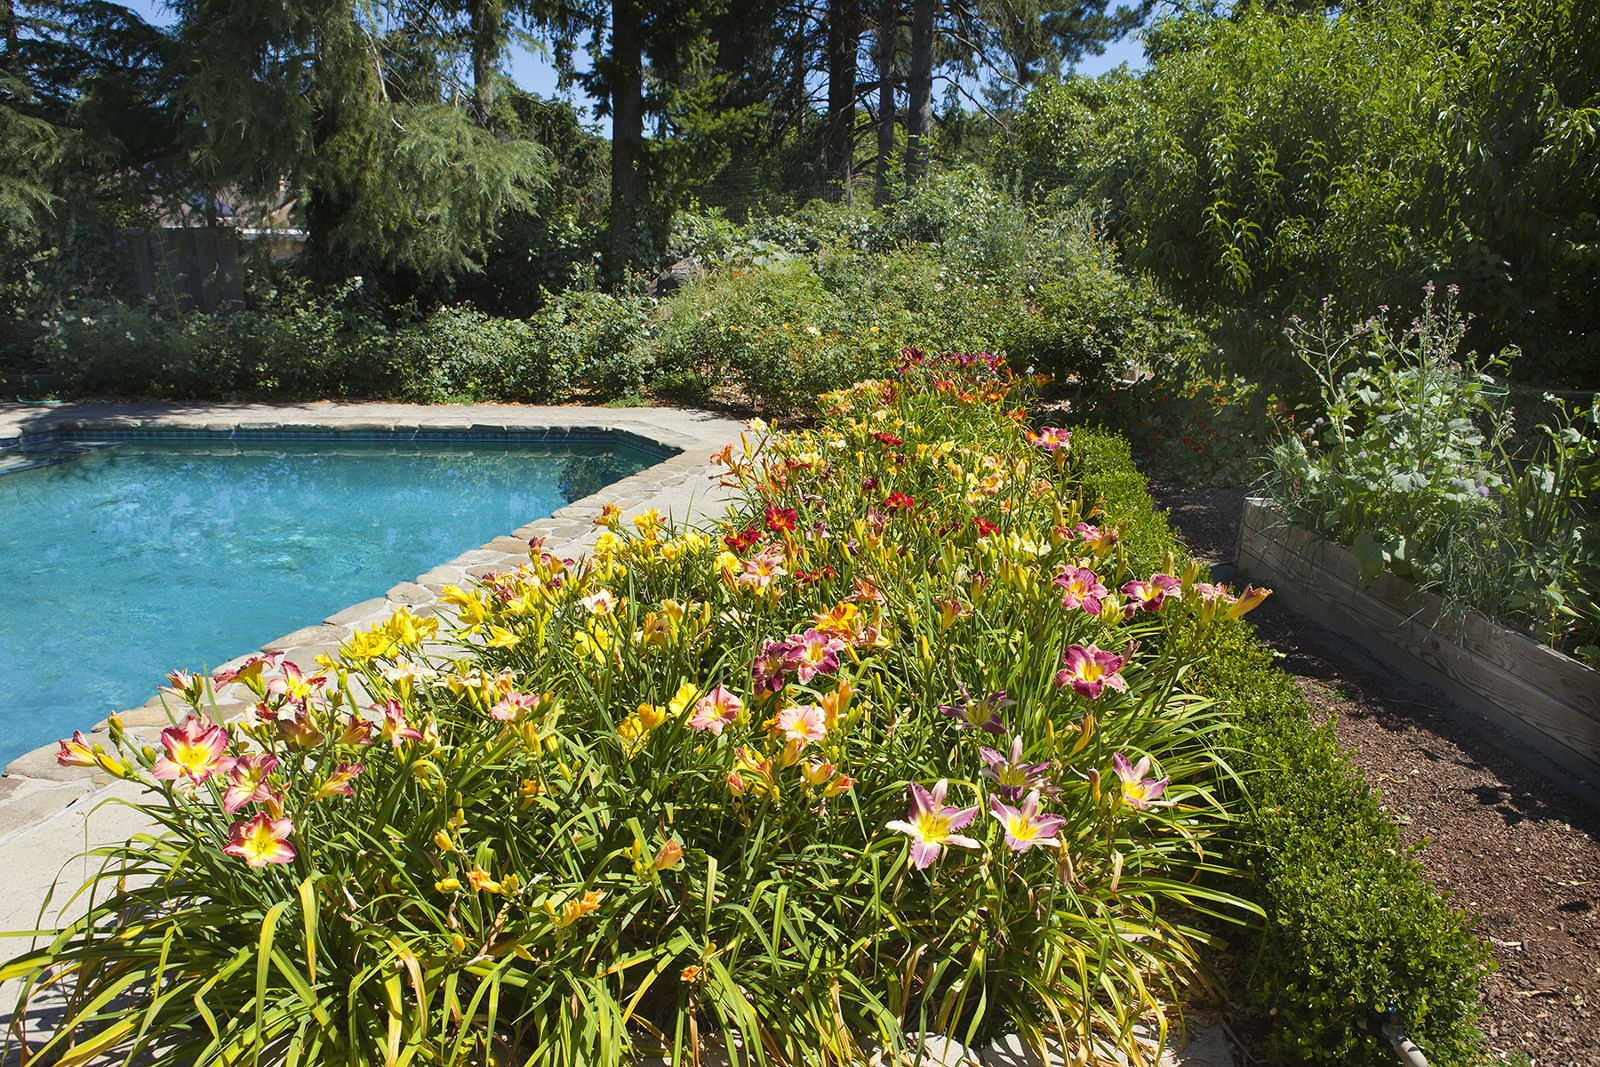 Day Lilies in Bloom around Pool